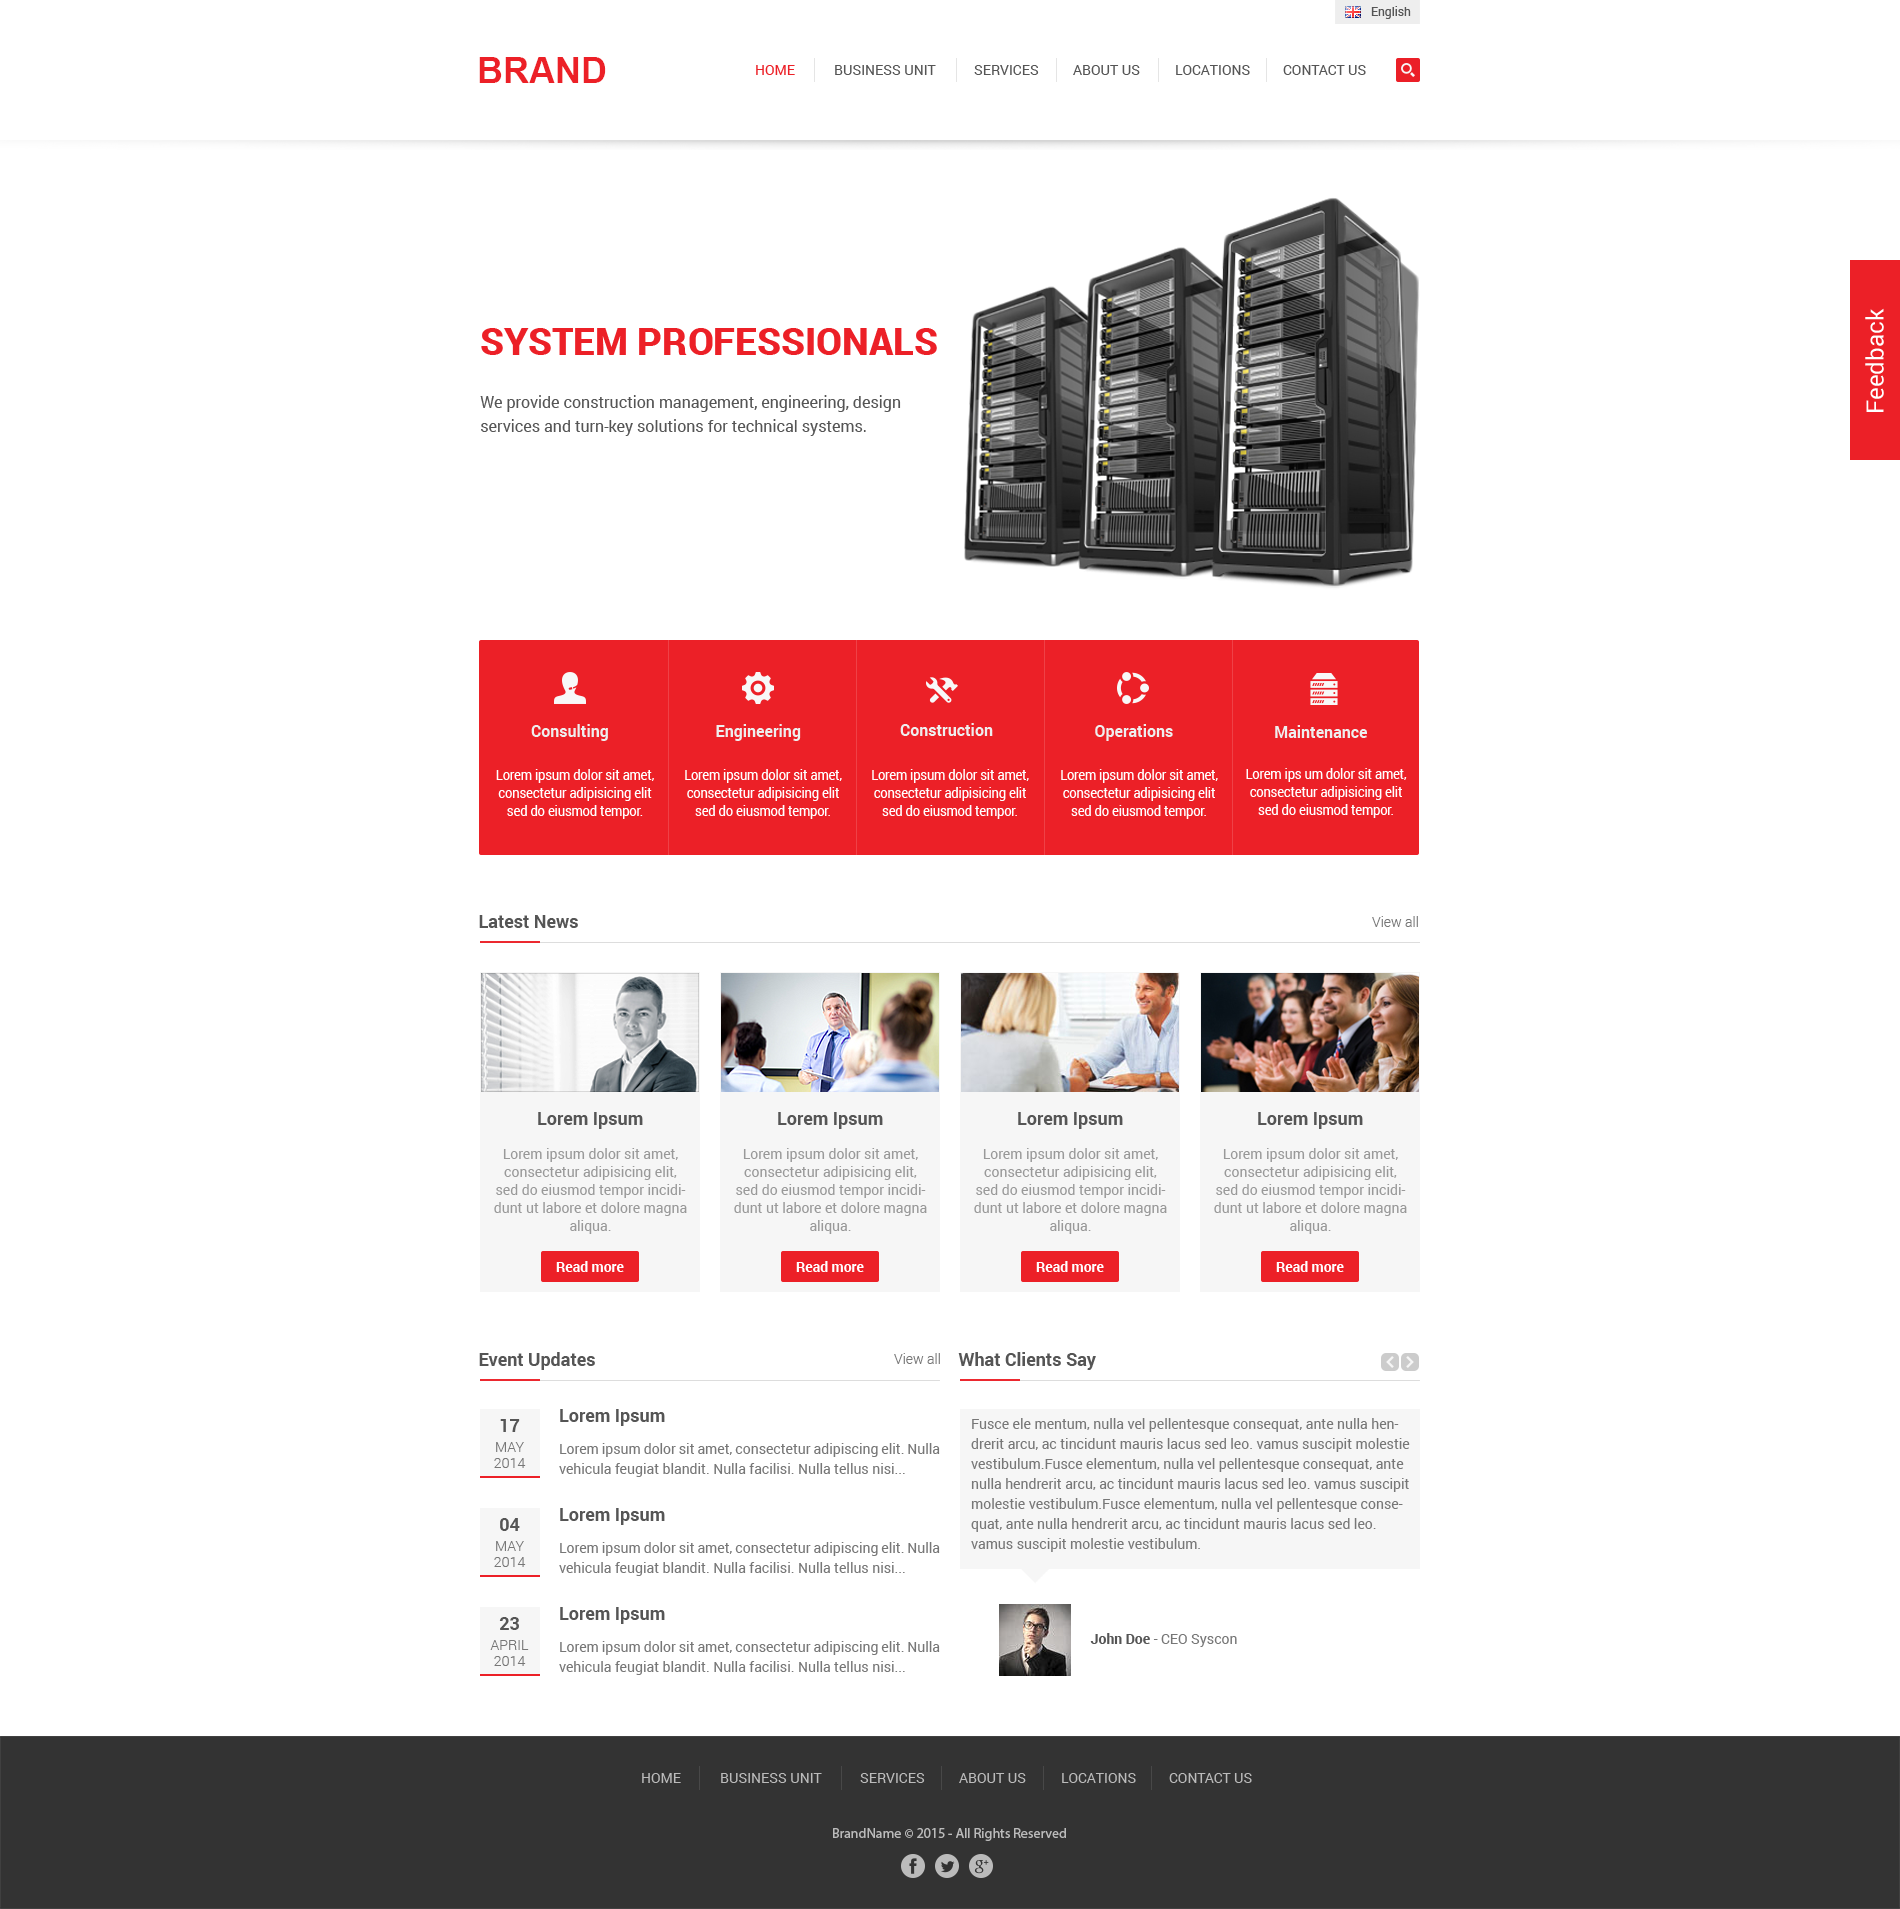 Corporate Design #2.2 by JohnGagiatsos